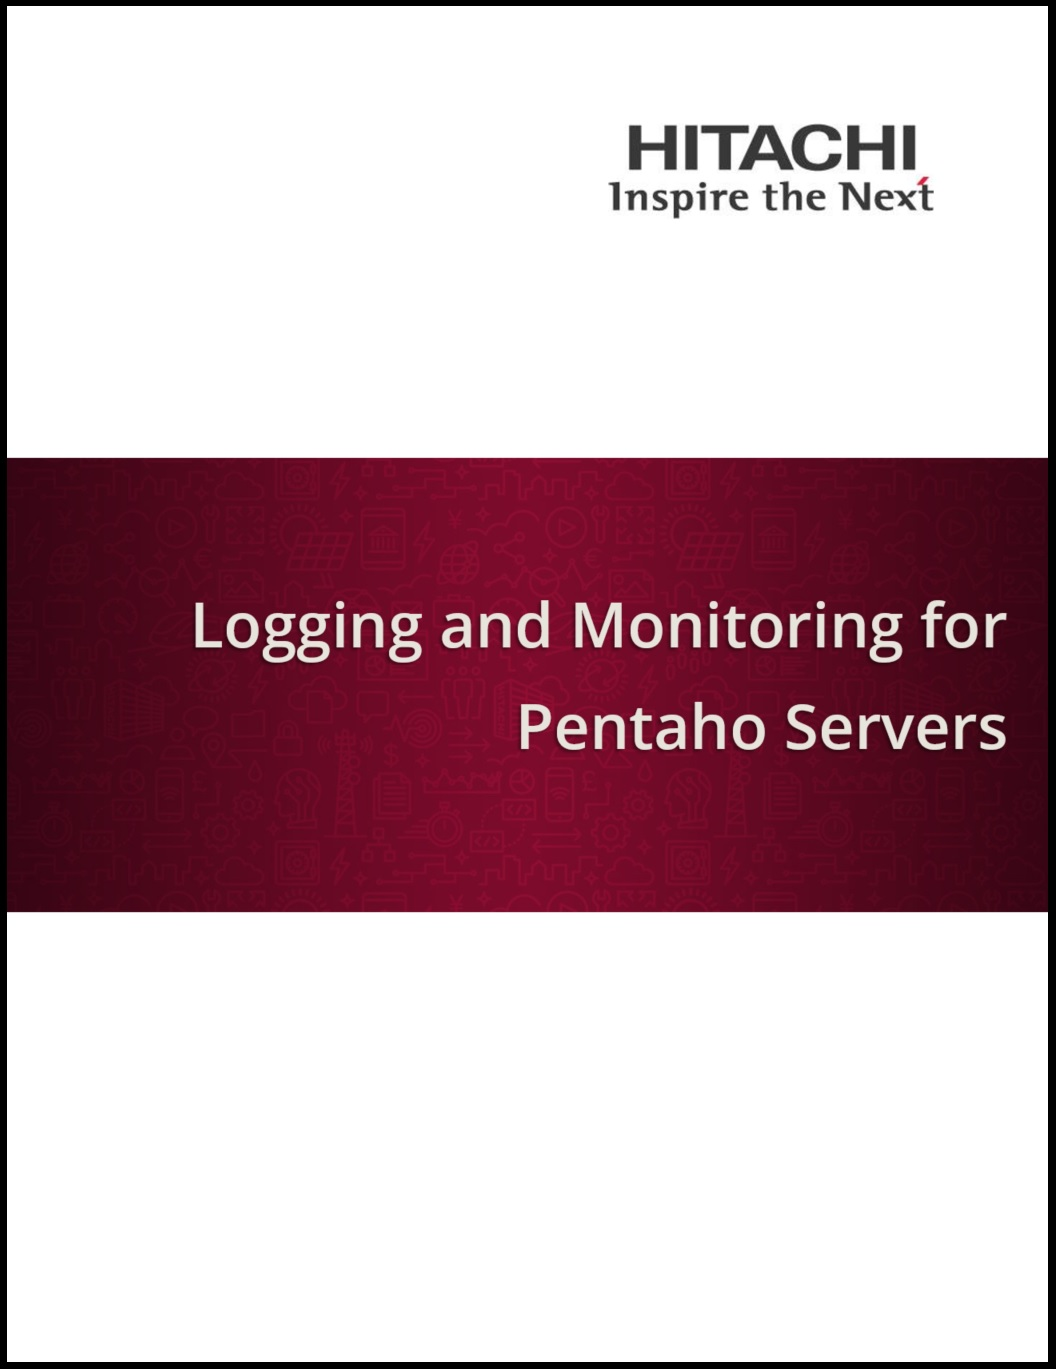 Logging_and_Monitoring_for_Pentaho_Servers_cover.jpg